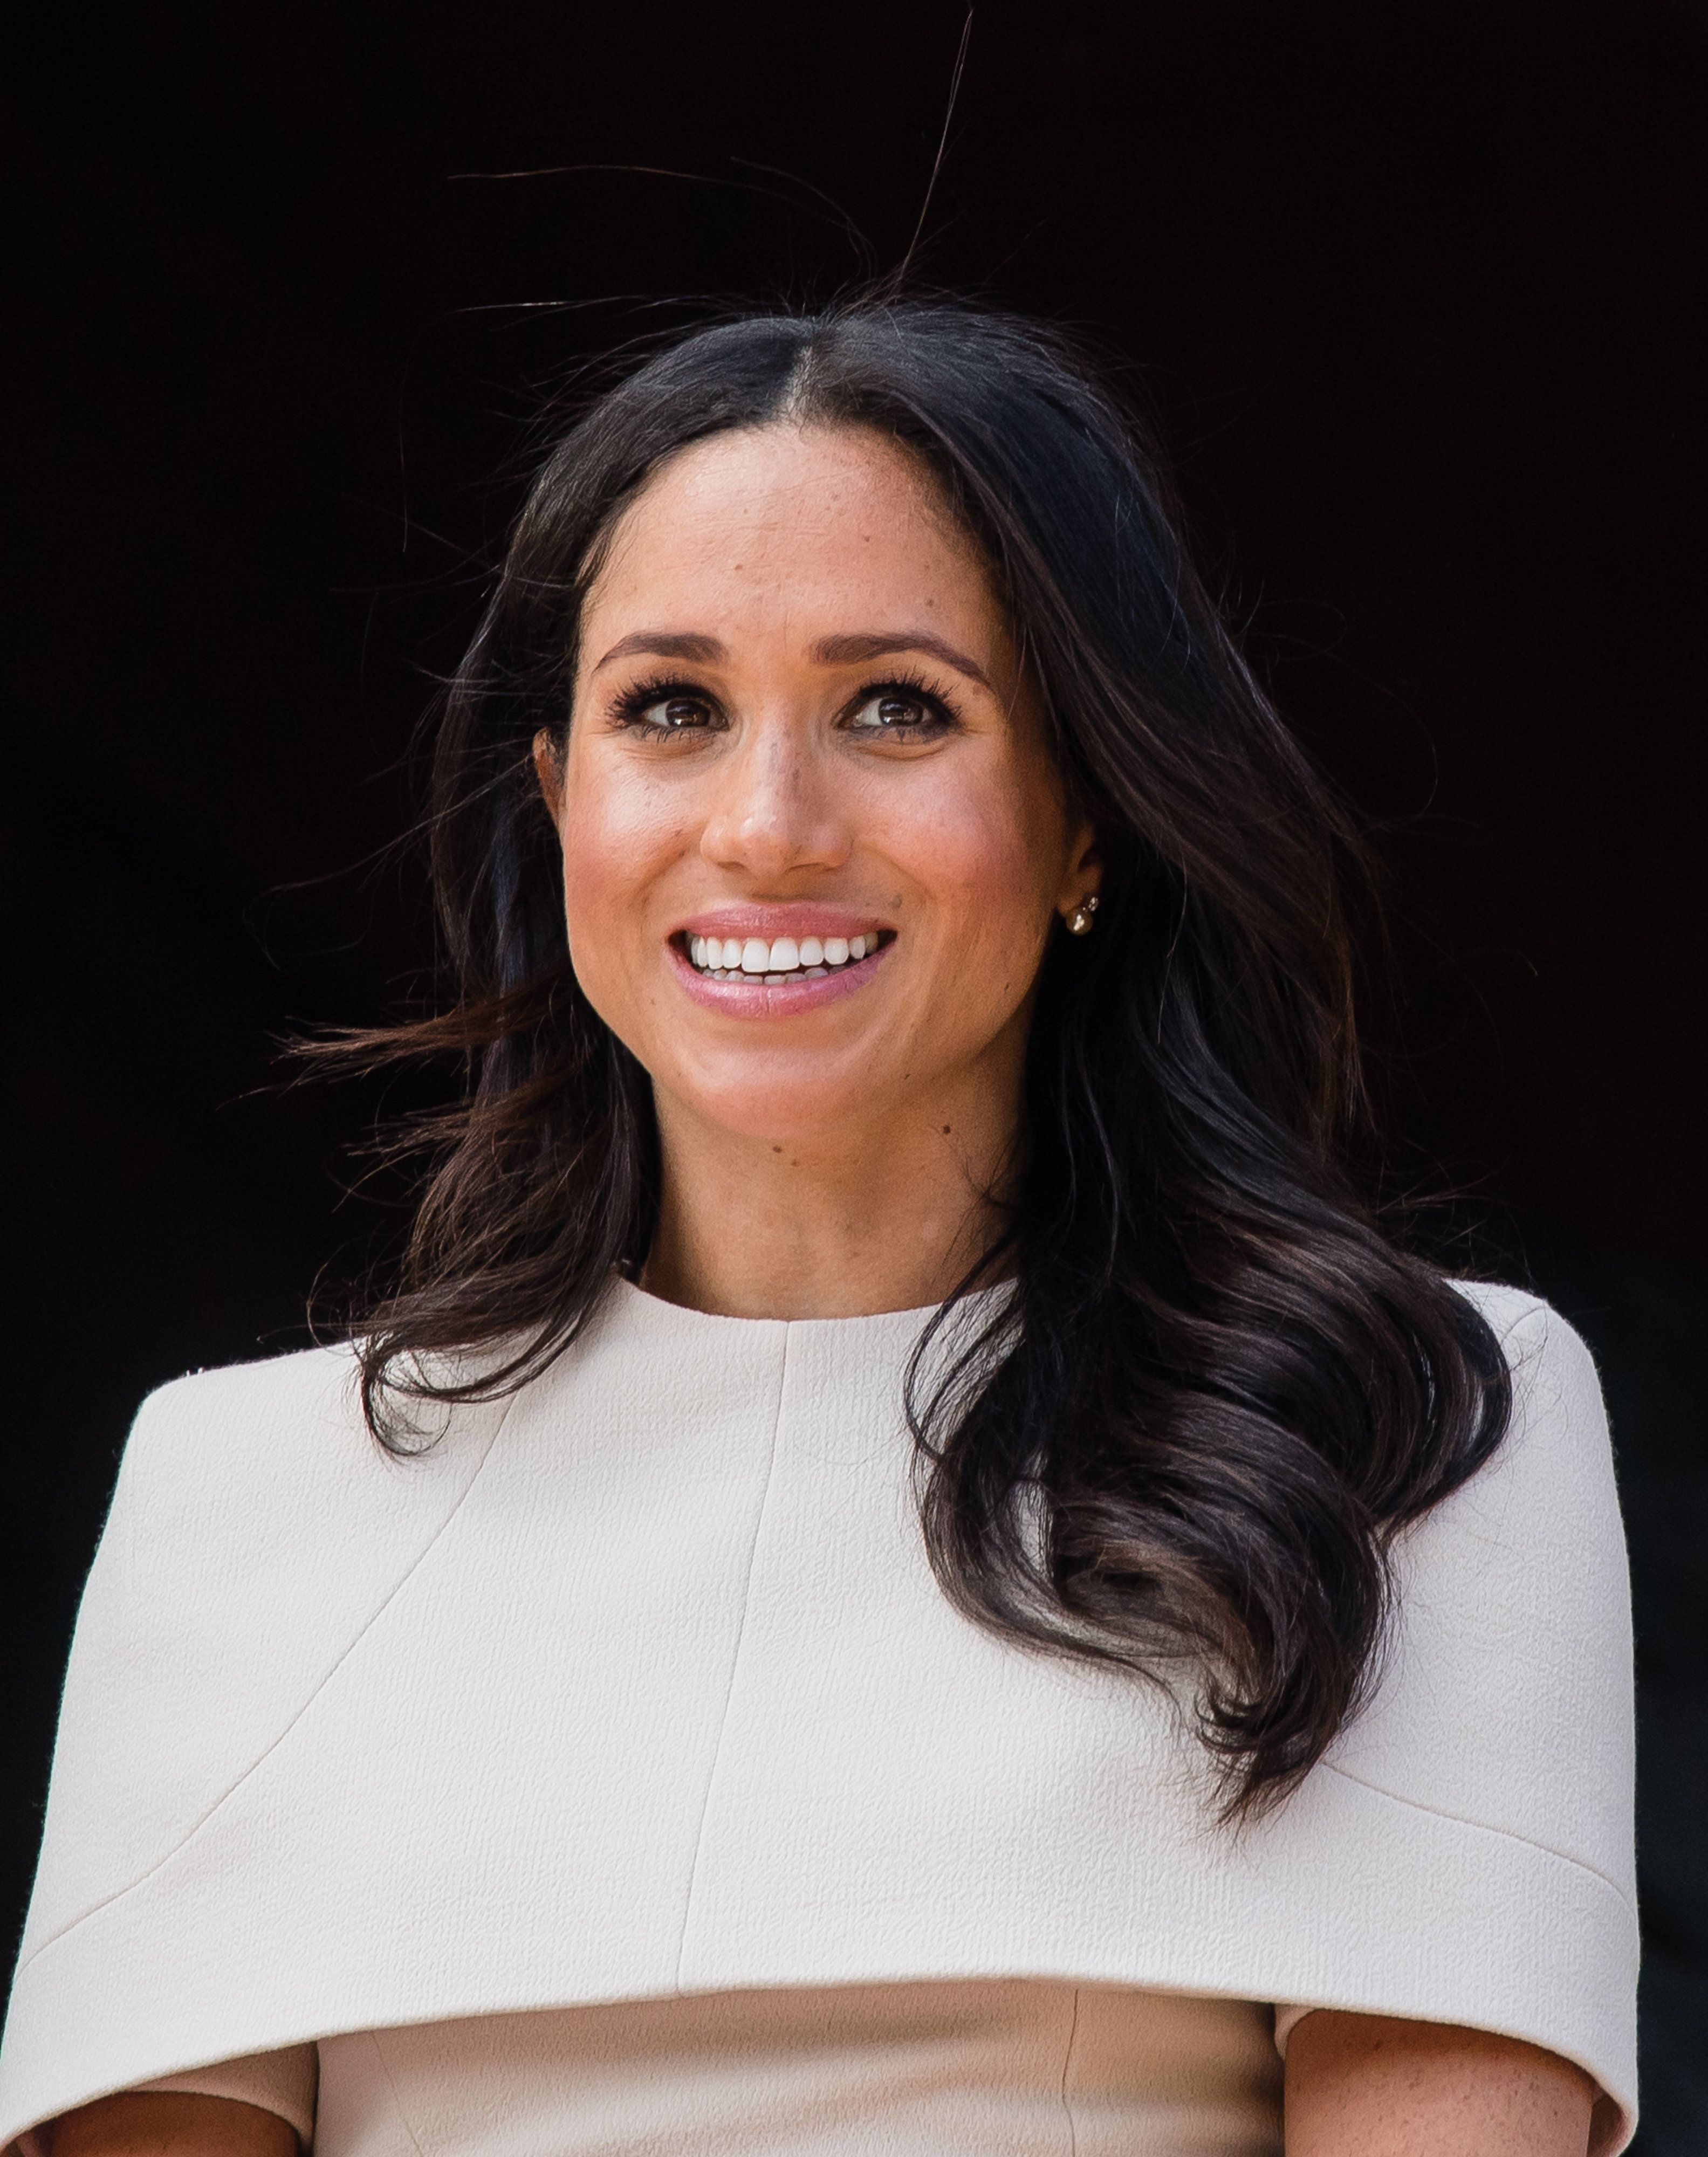 Meghan, Duchess of Sussex, has remained largely silent as her family members sell their stories to the press.